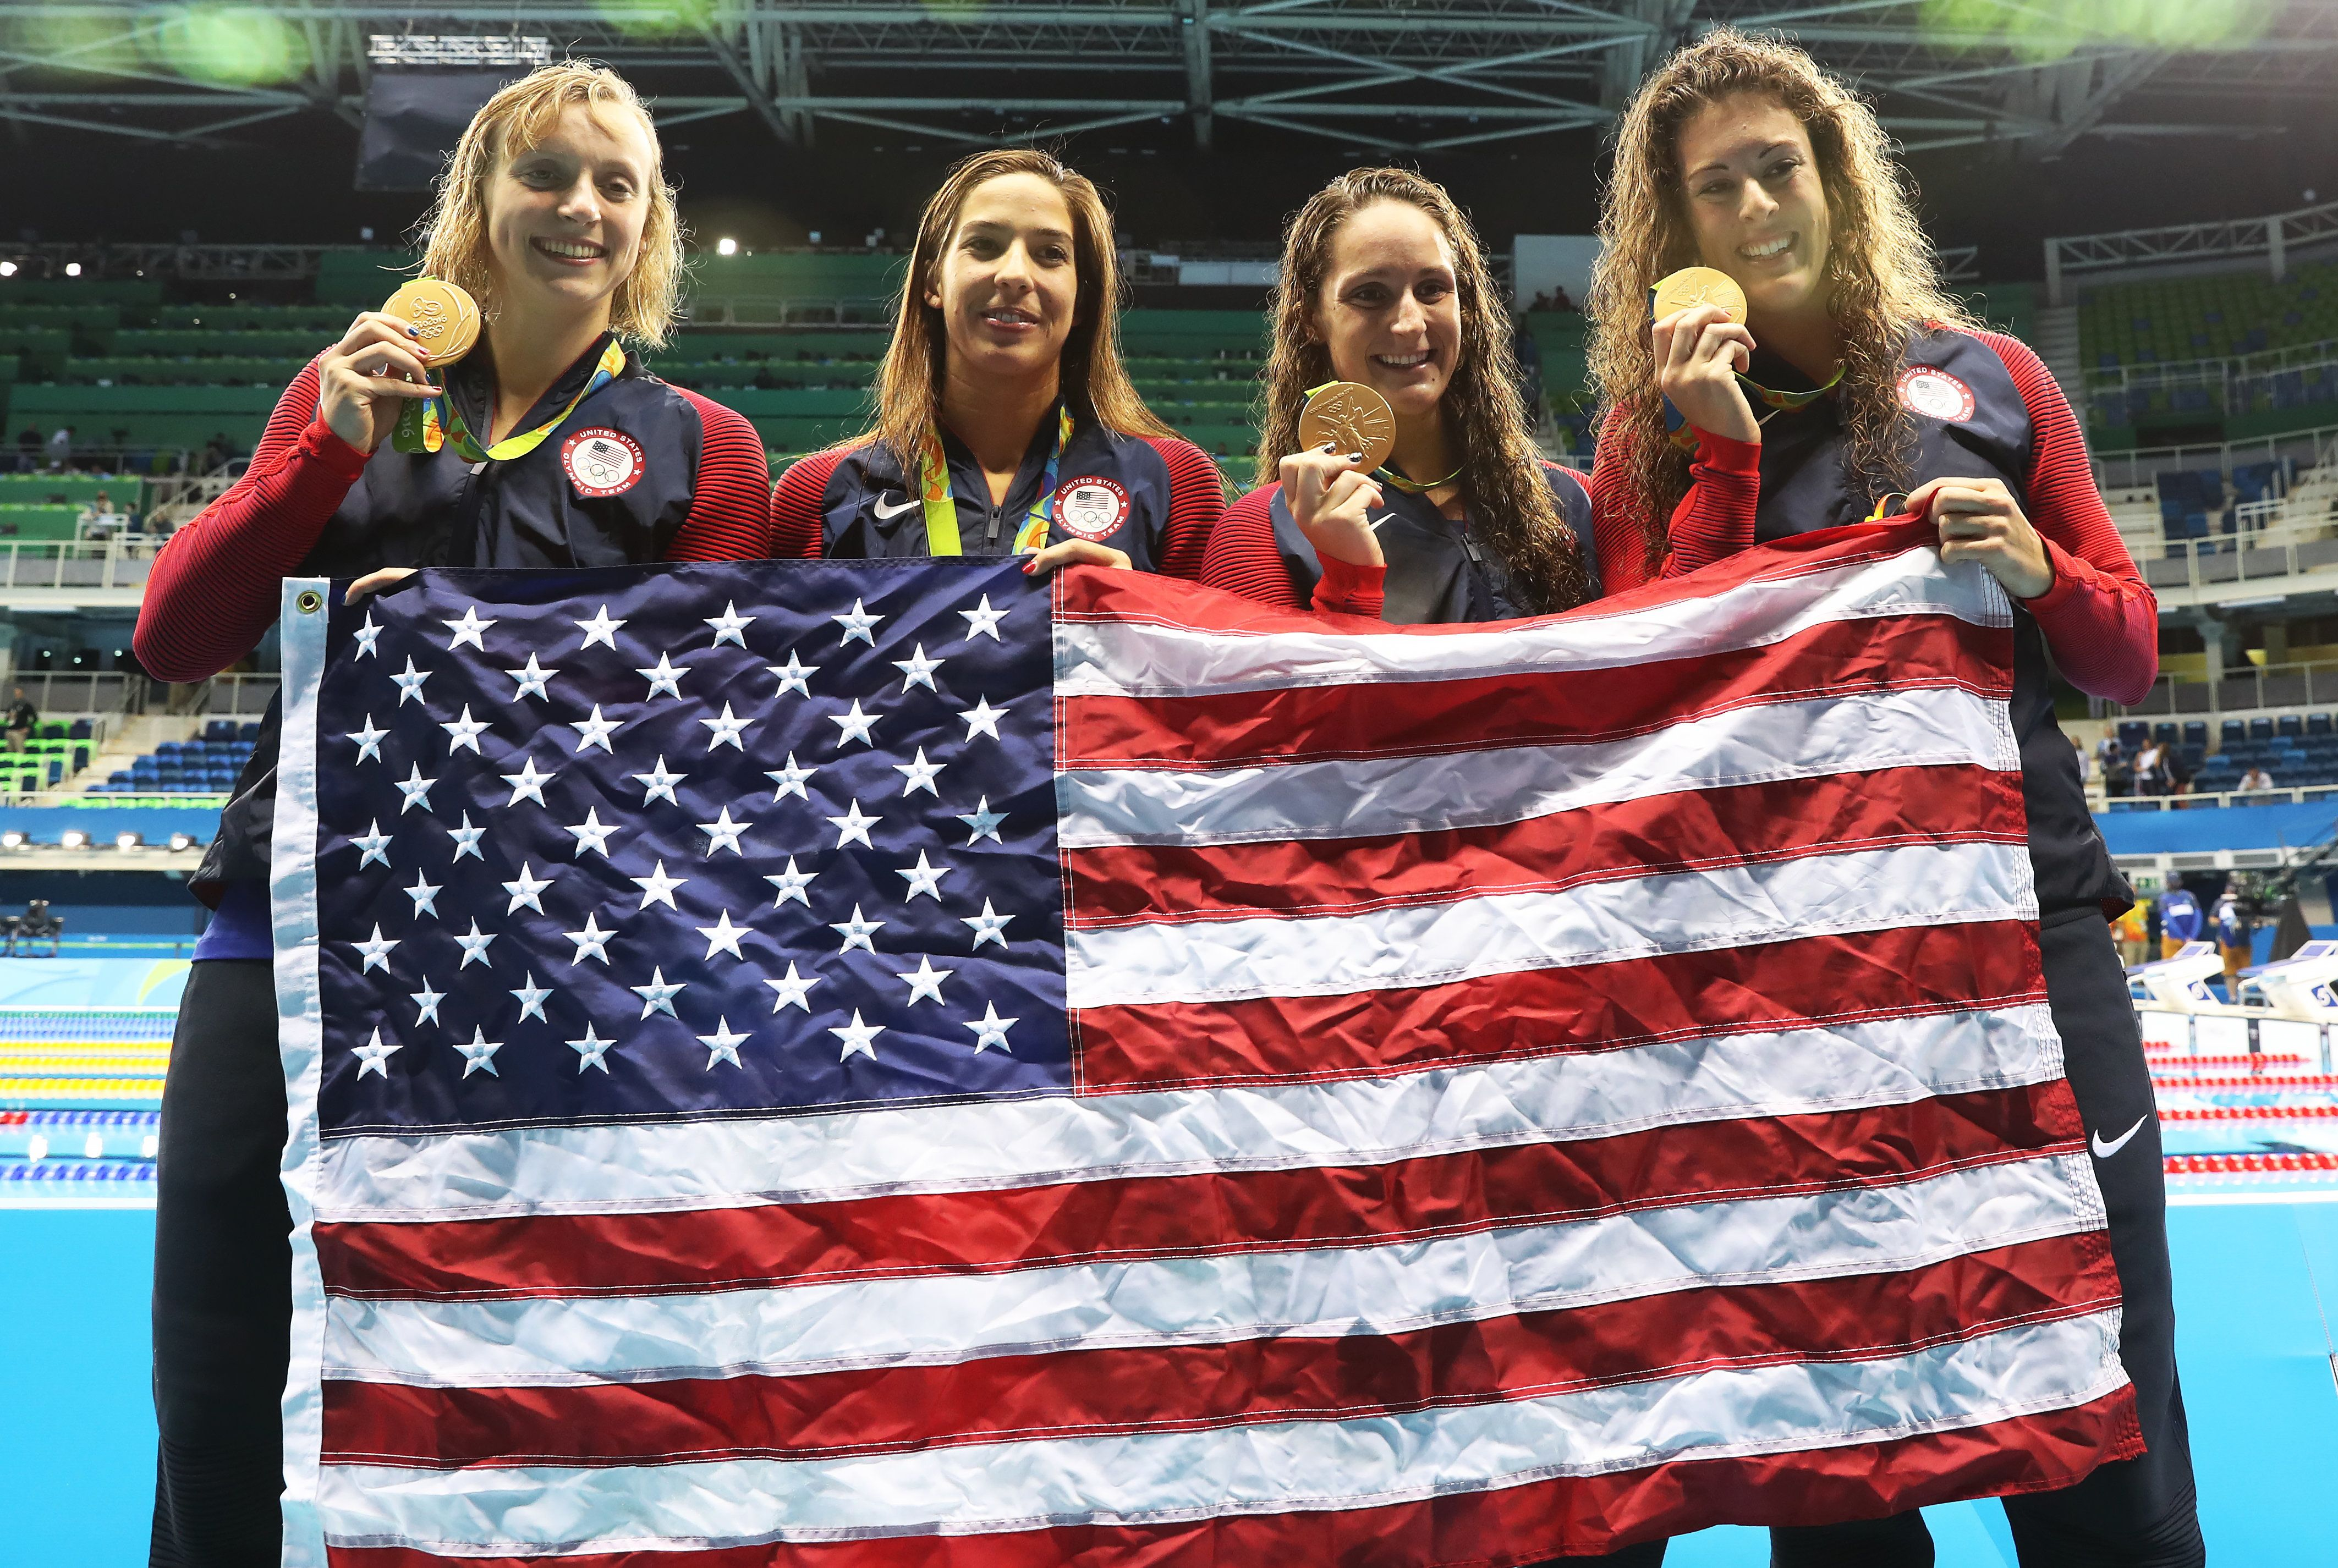 RIO DE JANEIRO, BRAZIL - AUGUST 10:  Katie Ledecky, Maya Dirado, Leah Smith and Allison Schimdt of United Statesvpose with their Gold medals from the Women's 4 x 20m Freestyle Relay on Day 5 of the Rio 2016 Olympic Games at the Olympic Aquatics Stadium on August 10, 2016 in Rio de Janeiro, Brazil. (Photo by Ian MacNicol/Getty Images)